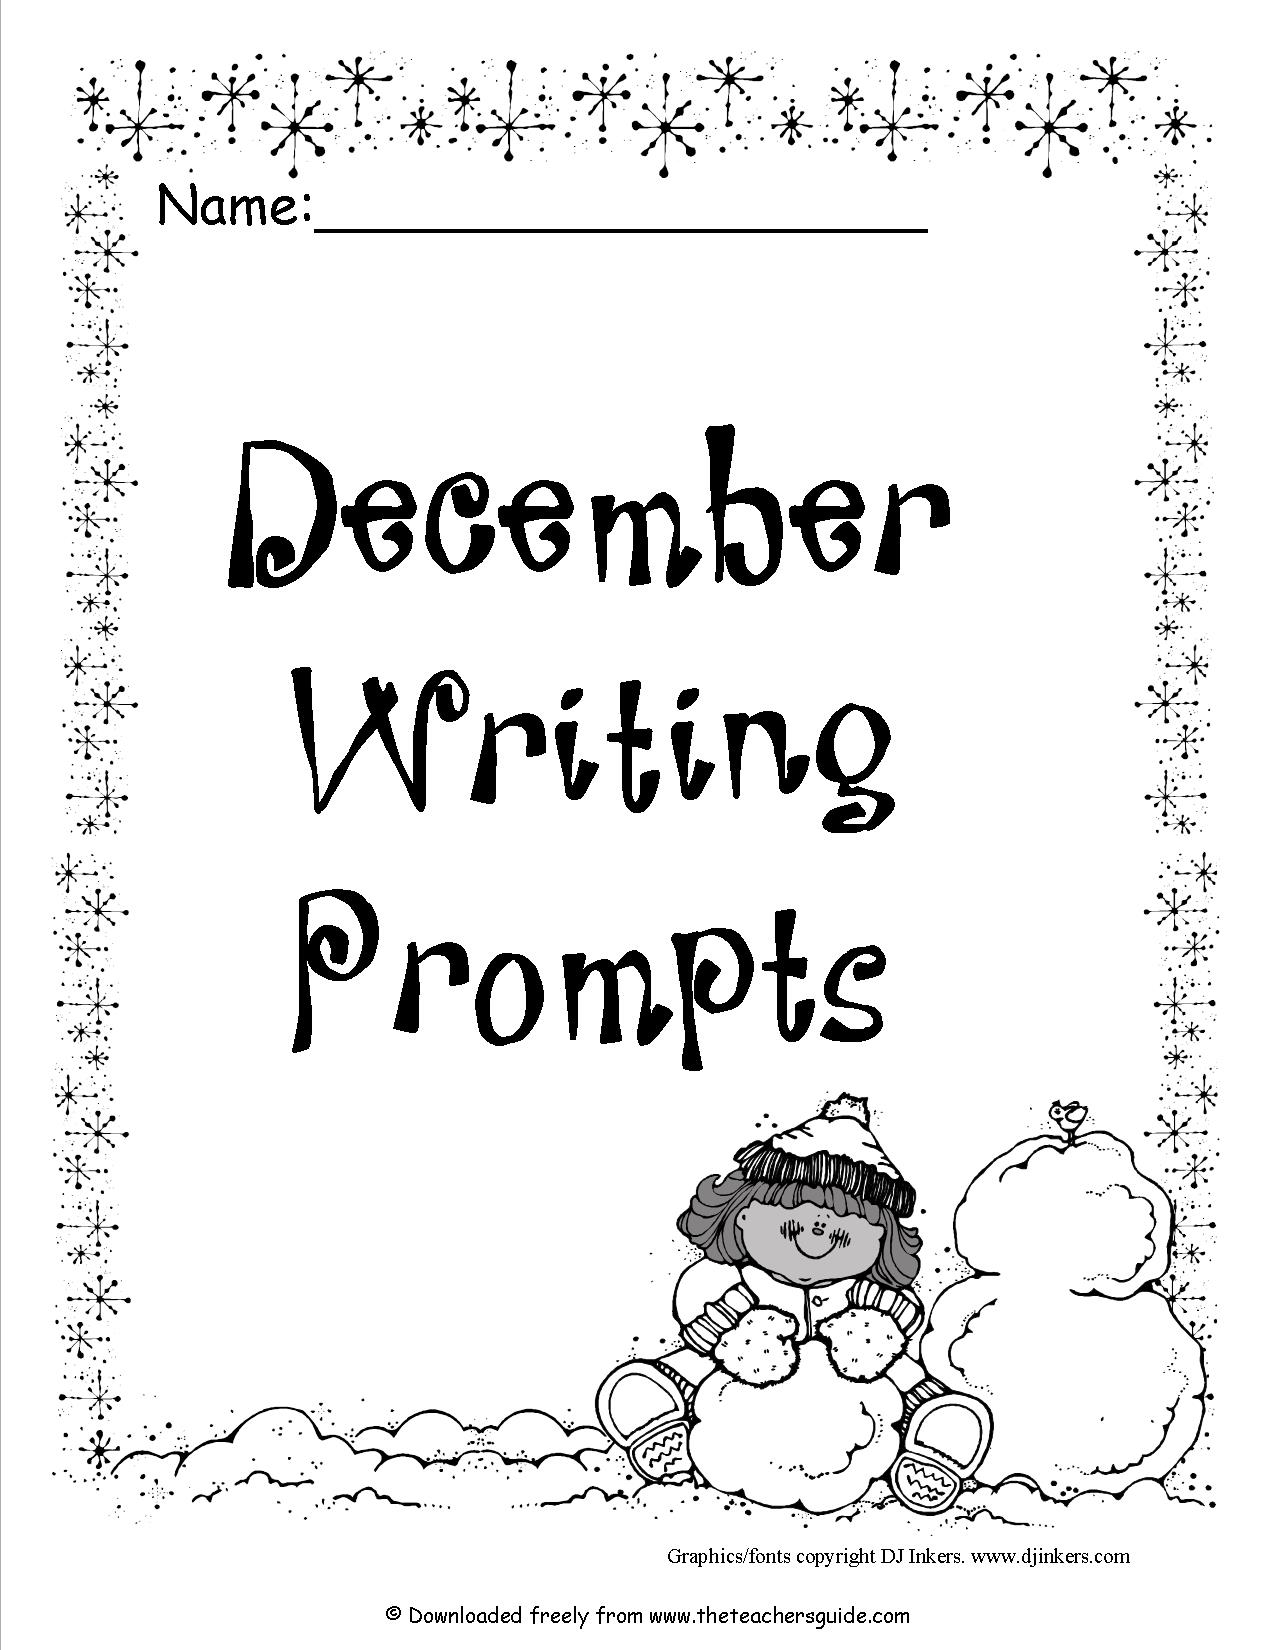 15 Best Images of Middle School Writing Prompts Worksheets